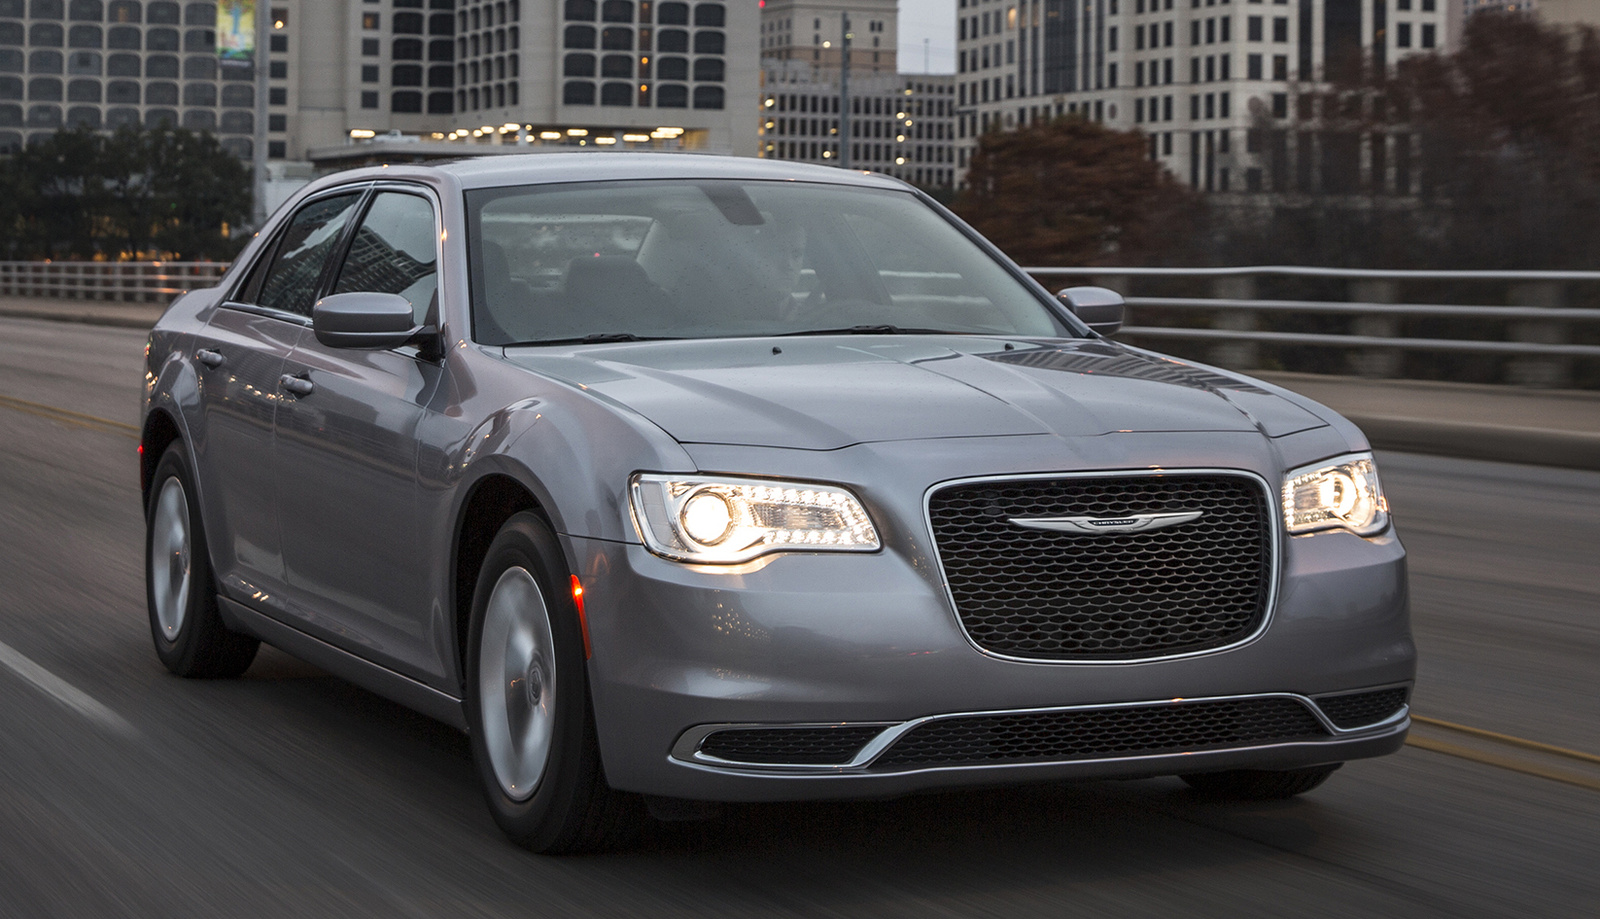 2016 Chrysler 300 - Overview - CarGurus